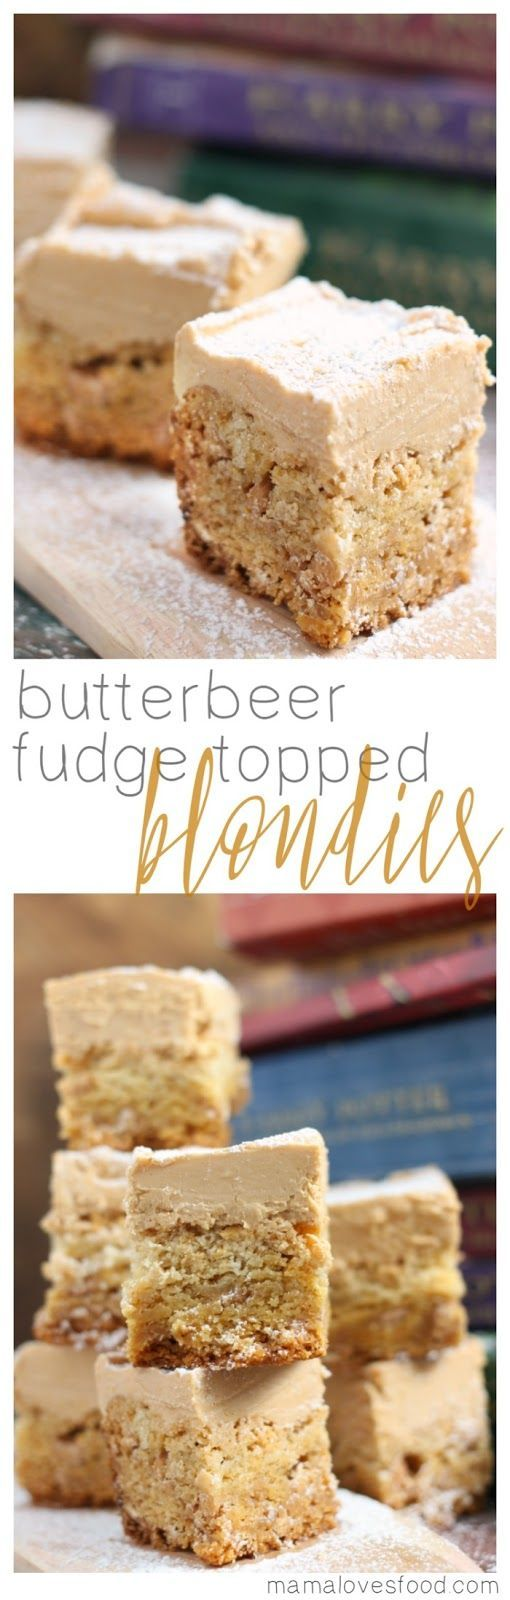 Butterbeer fudge topped blondies harry potter recipe baking butterbeer fudge topped blondies harry potter recipe forumfinder Images